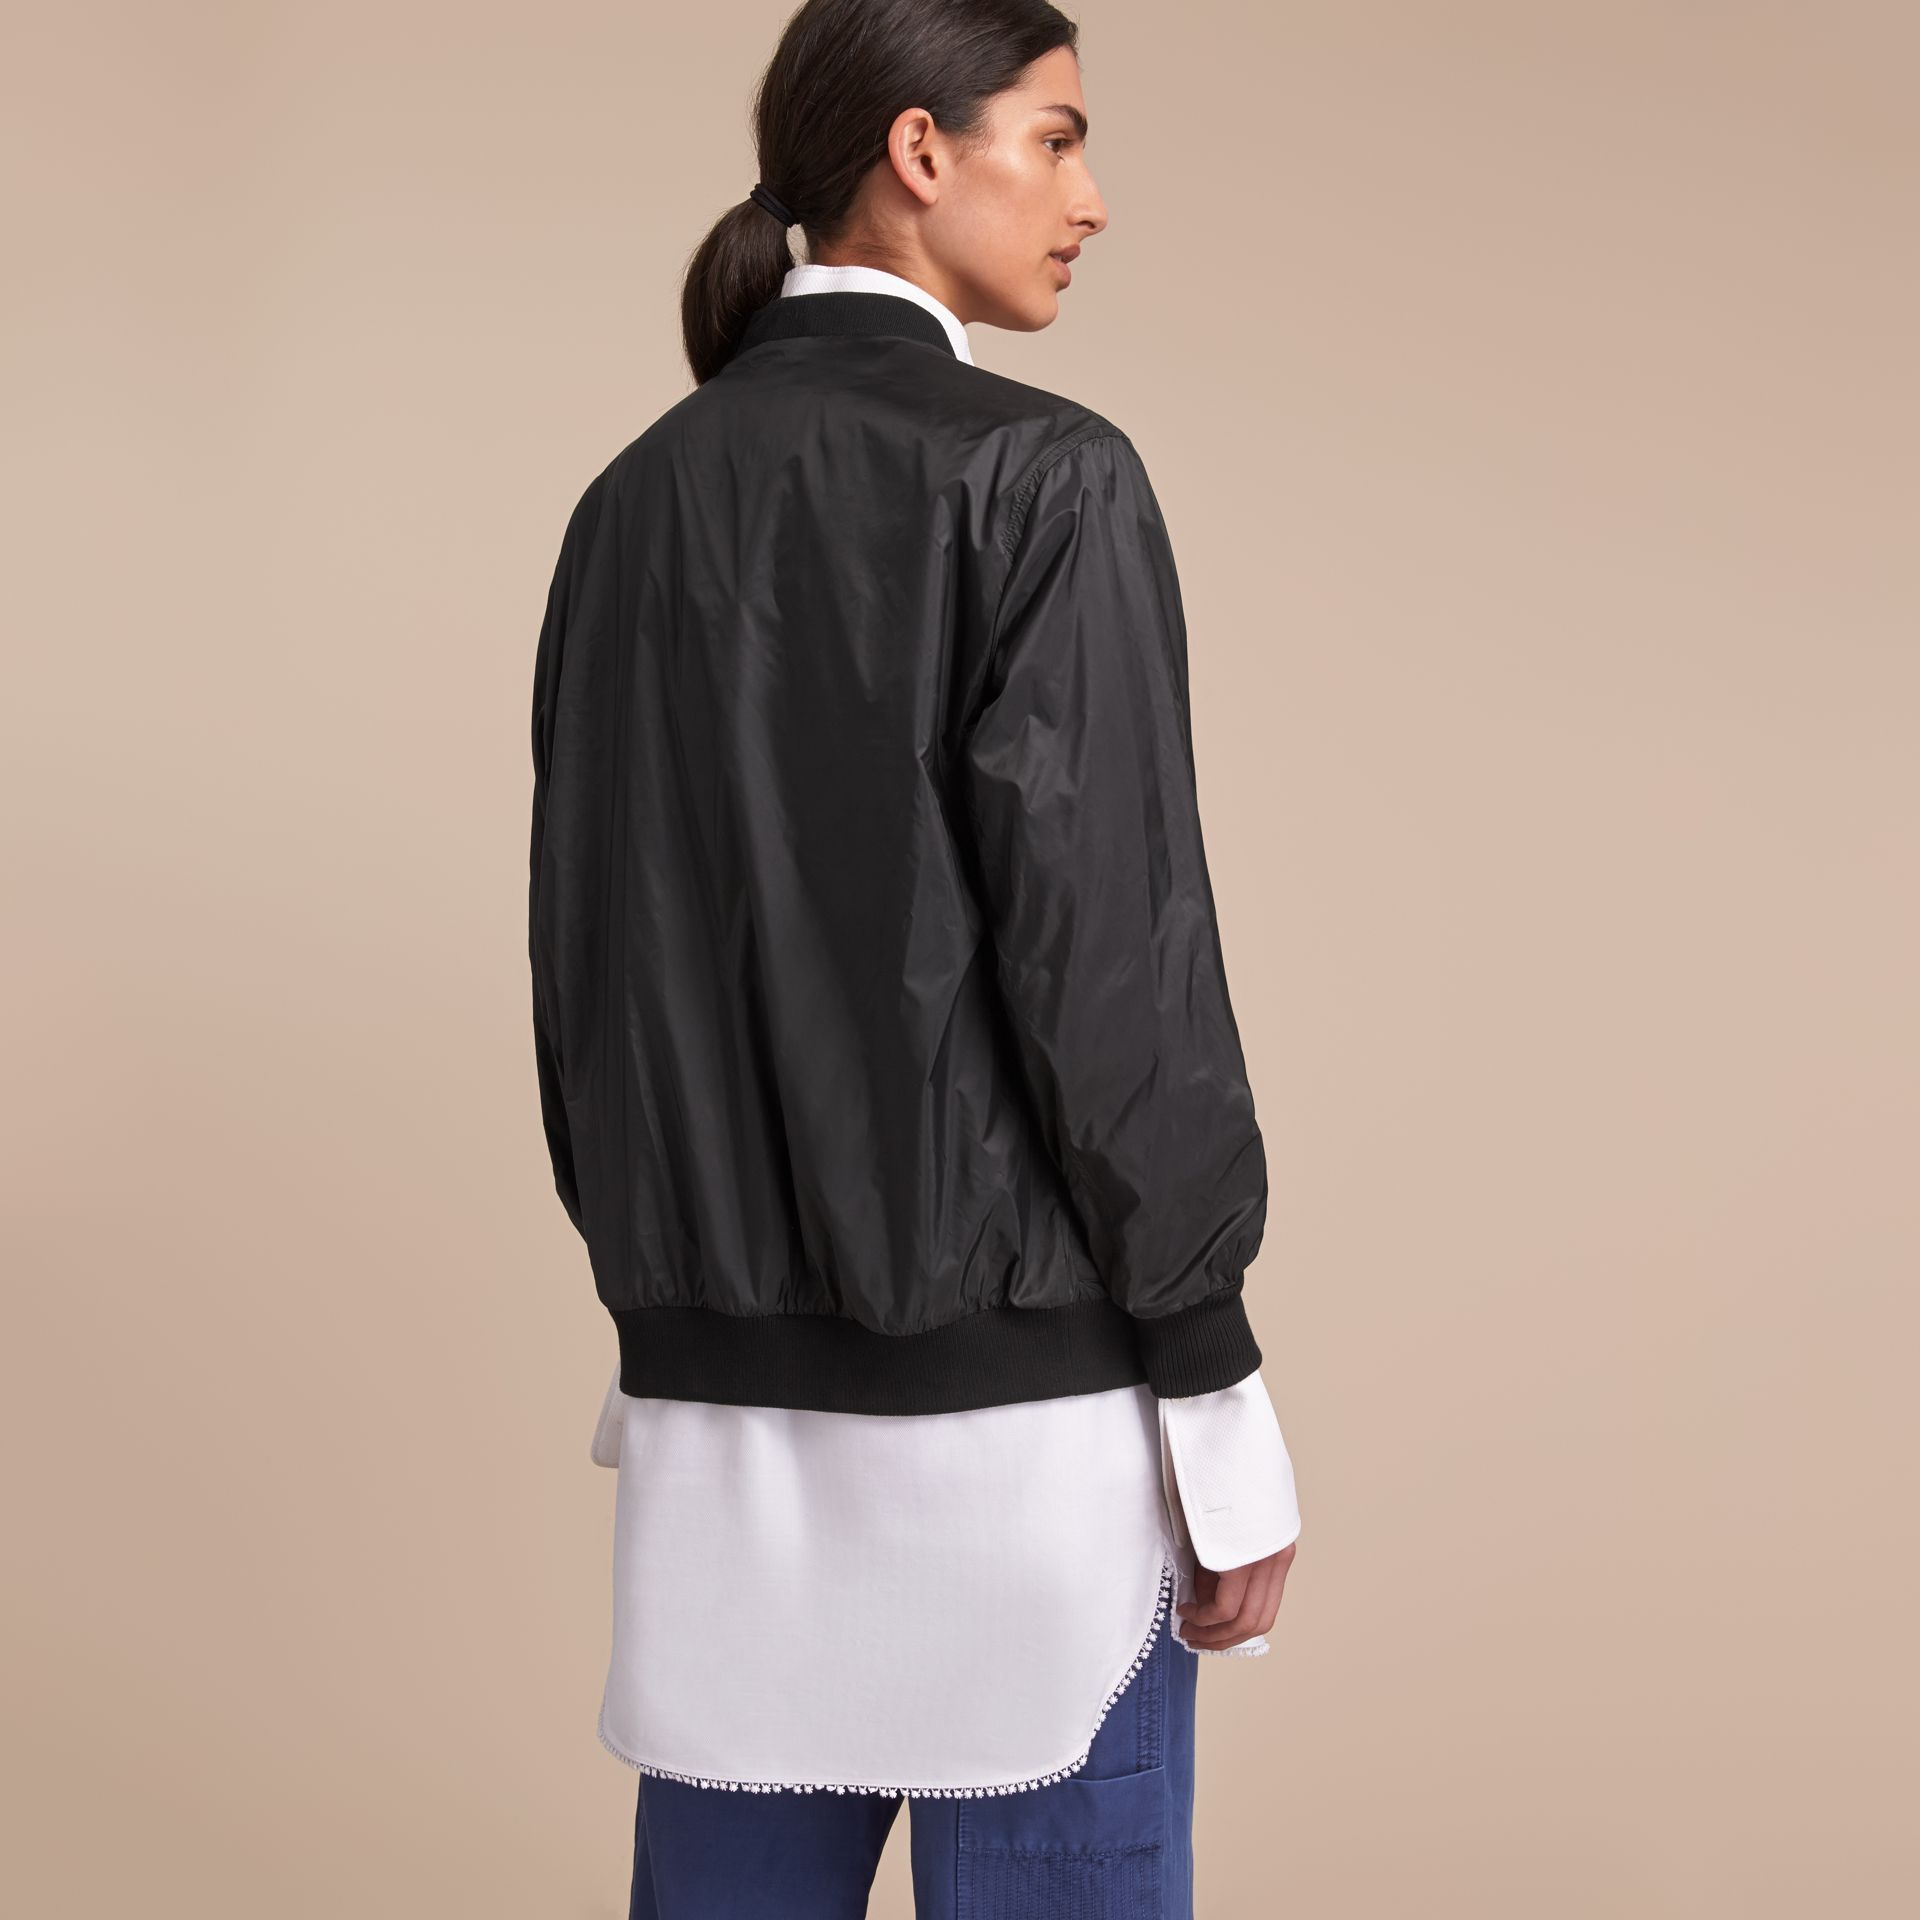 Lightweight Bomber Jacket in Black - Women | Burberry - gallery image 3